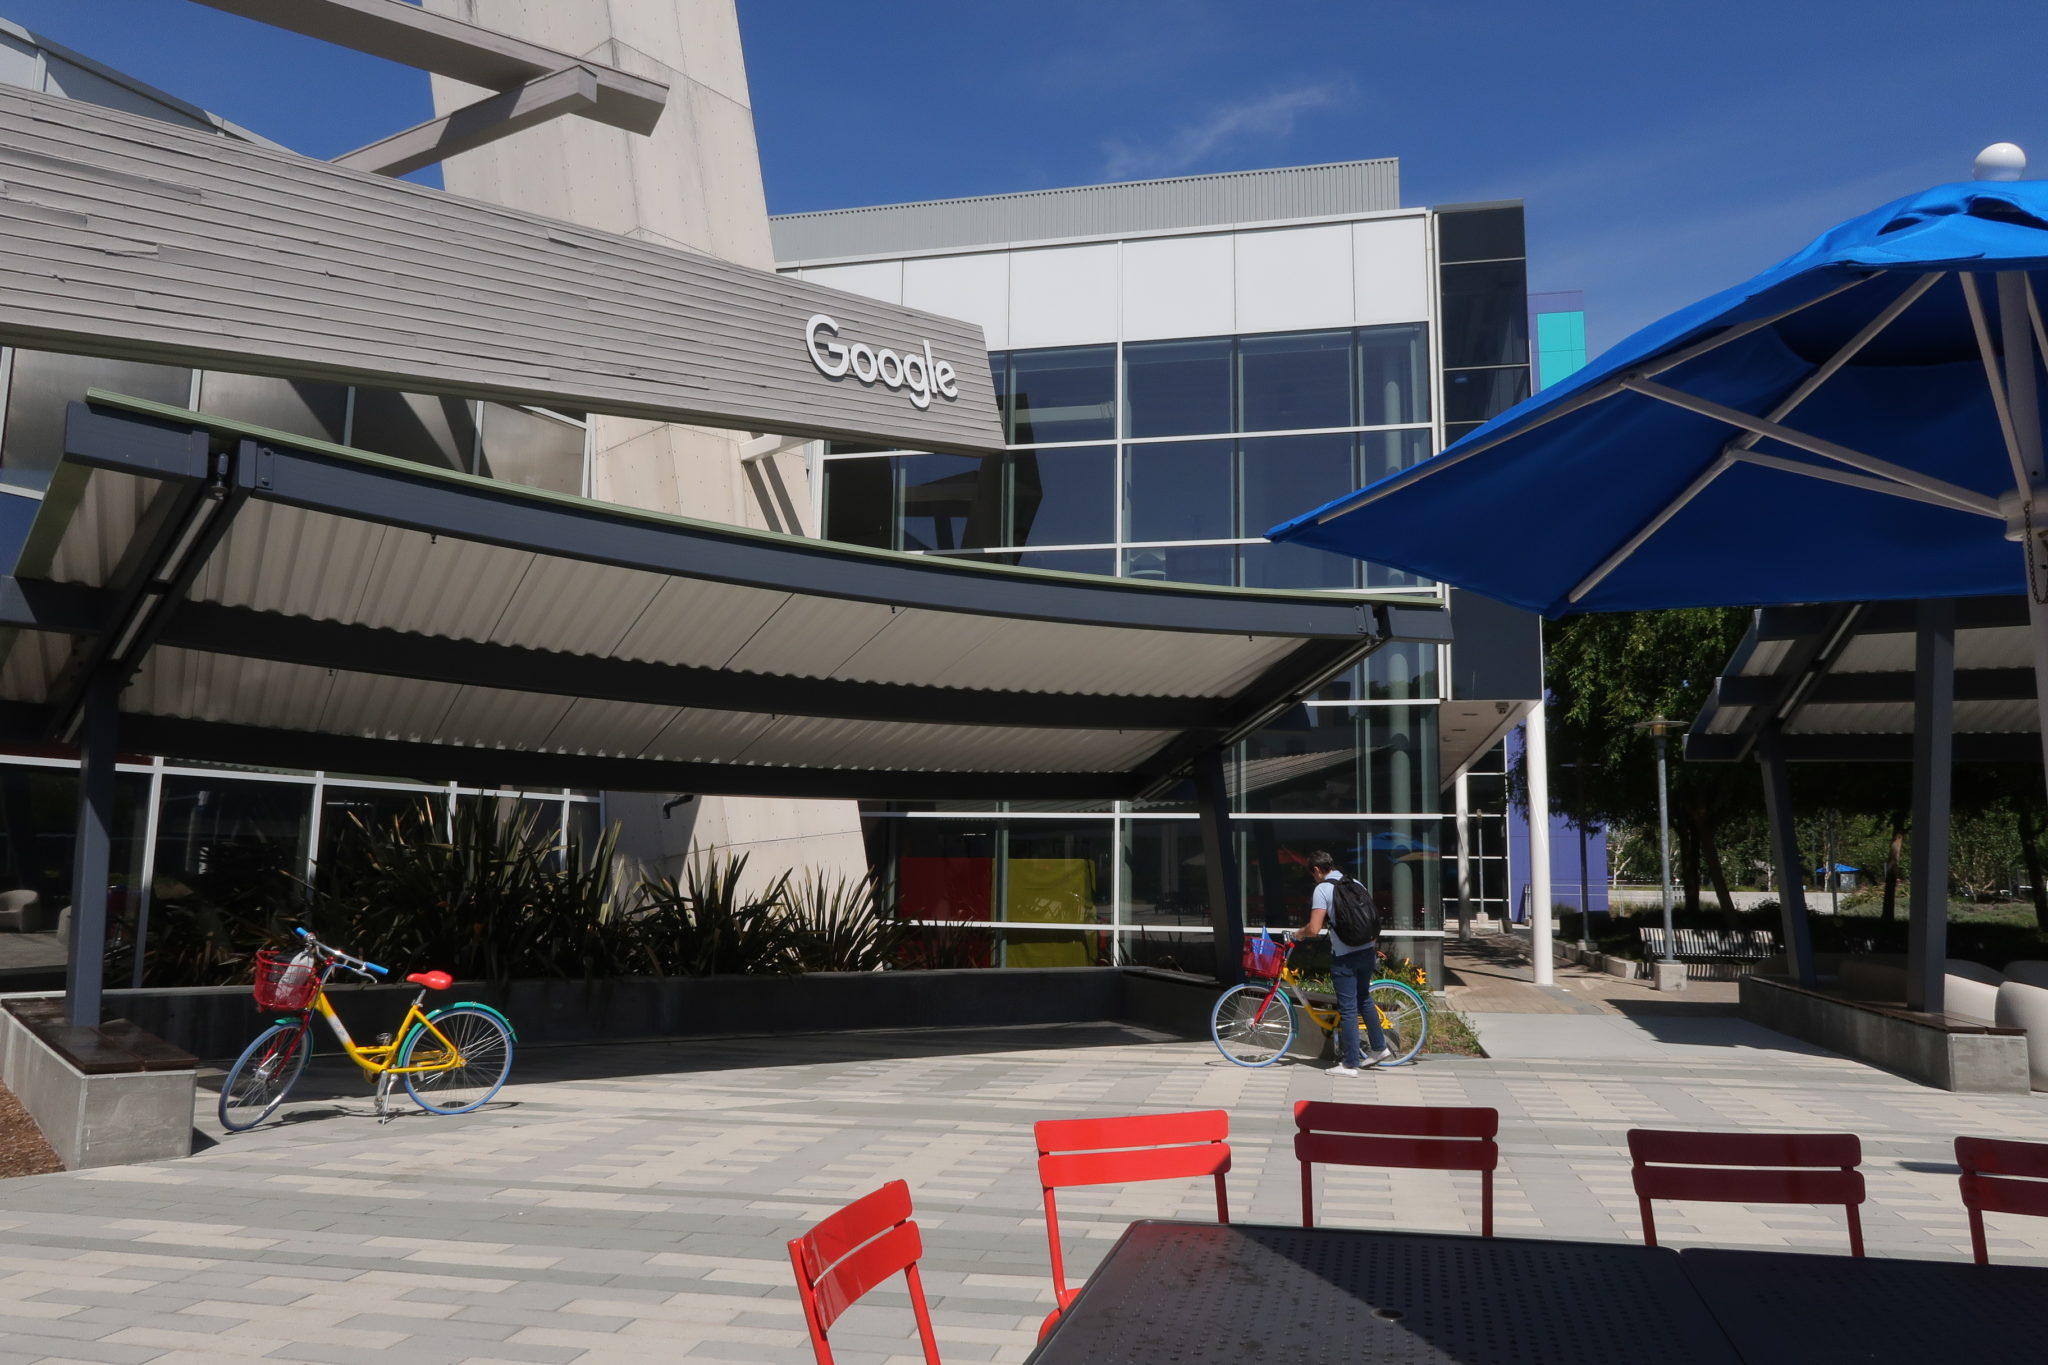 Complexe de Google dans la Silicon Valley, Californie.